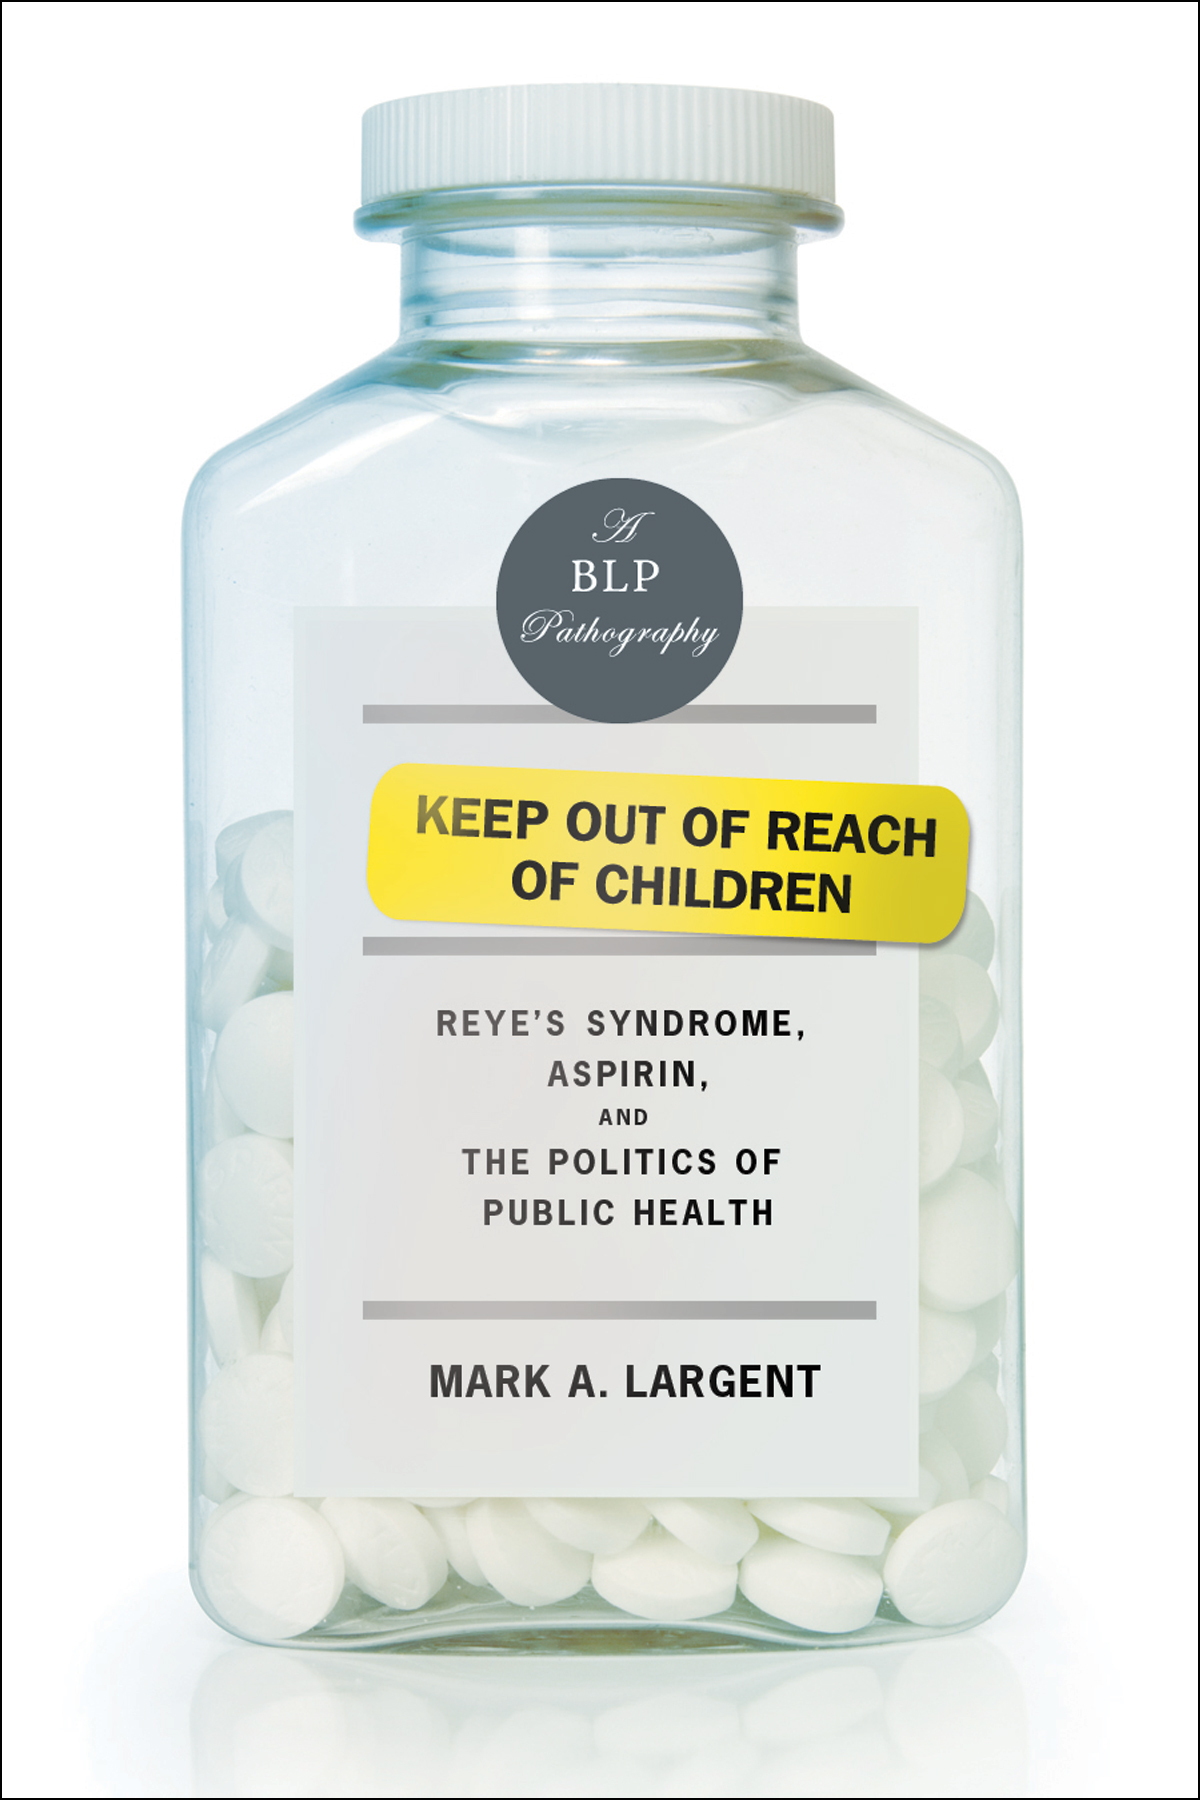 KEEP OUT OF REACH OF CHILDREN by Mark A. Largent 9781934137888